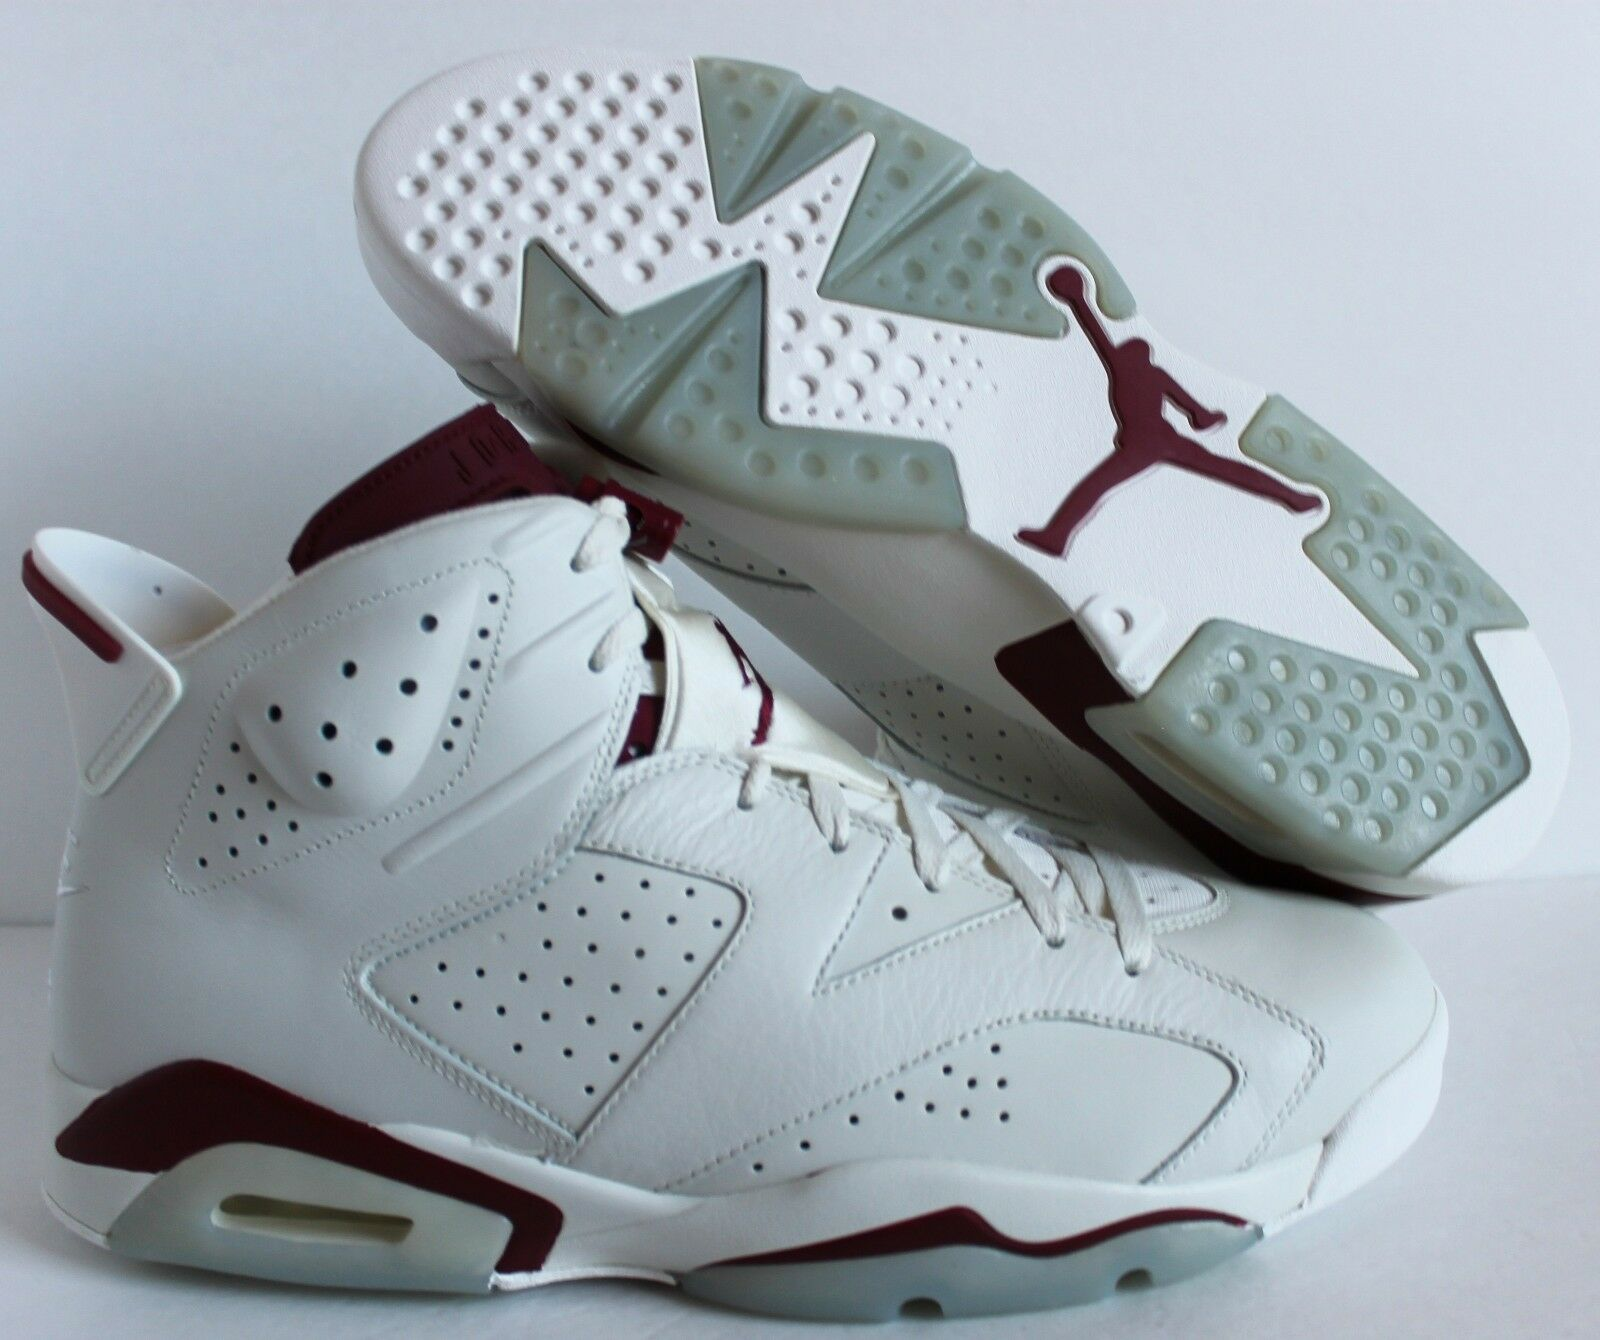 Nike Air Jordan 6 retro Off SZ White-New Maroon SZ Off 17 [384664-116] 99c198